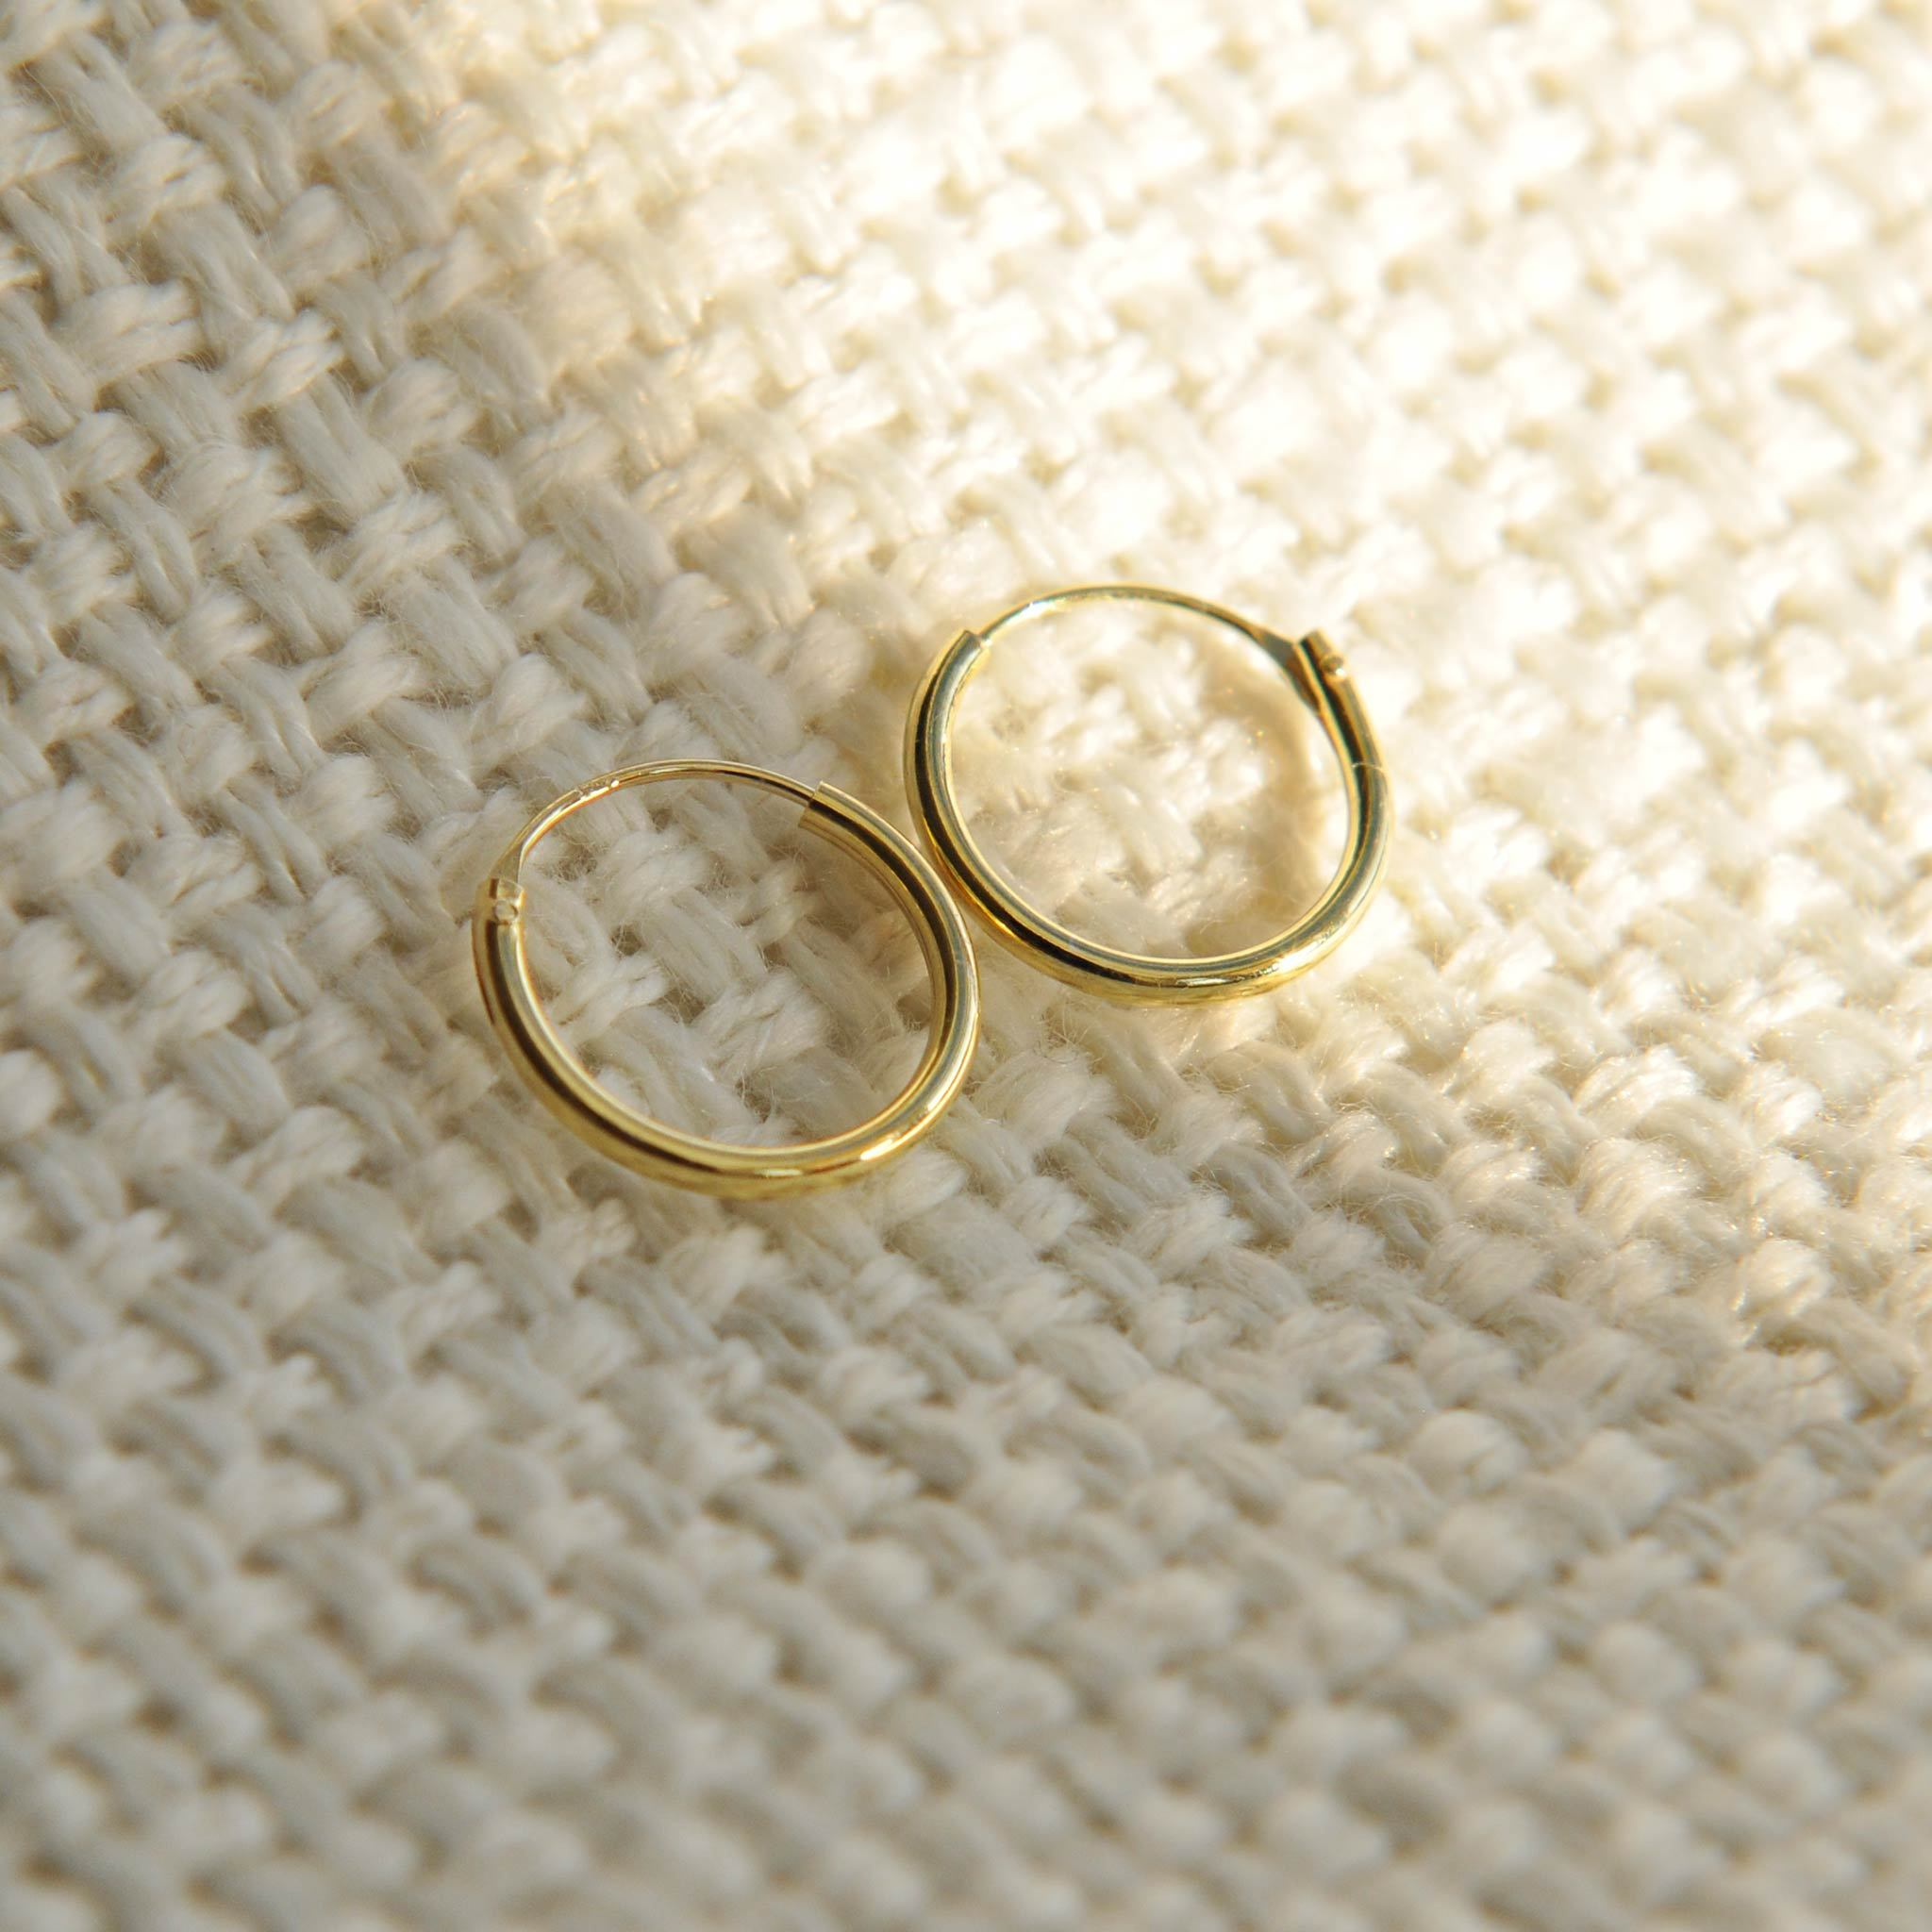 10mm gold huggie earrings